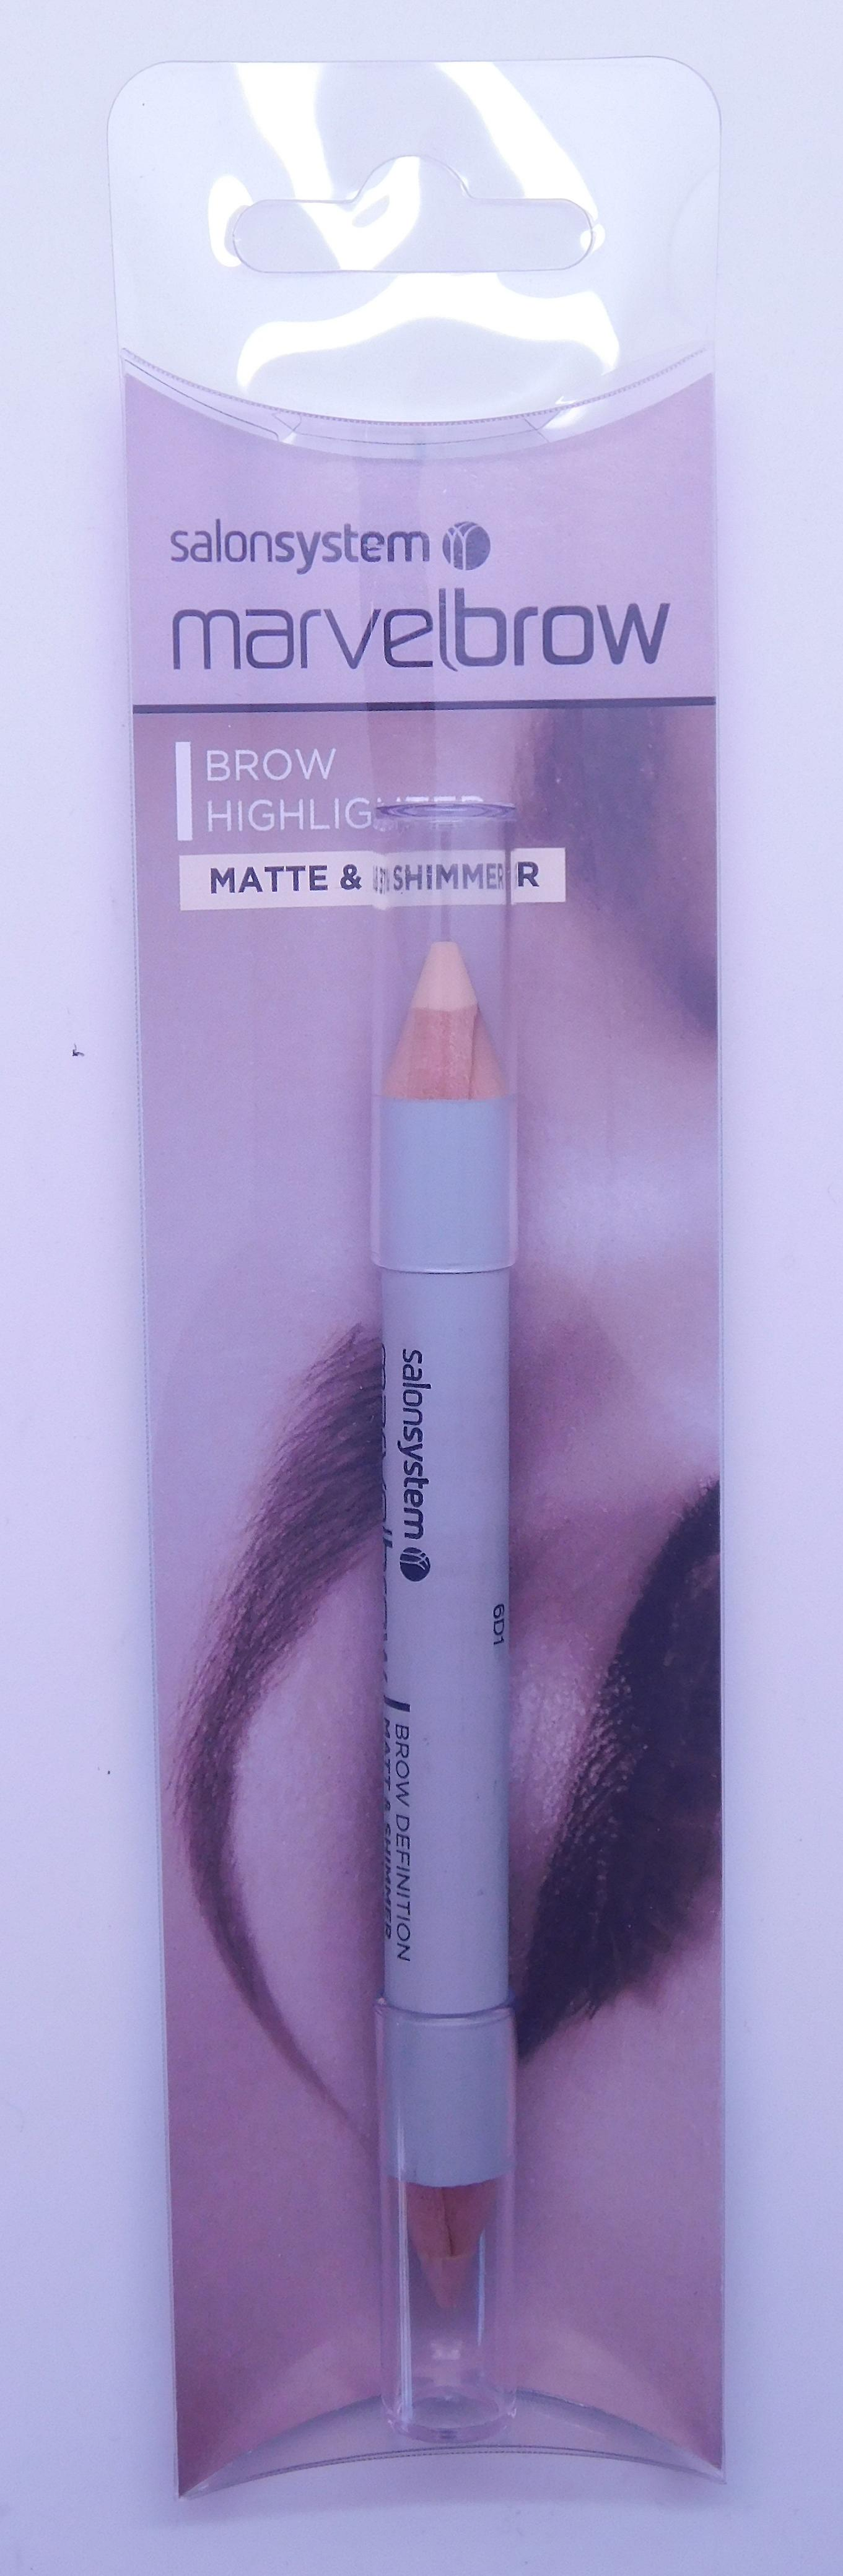 Salon System Marvelbrow Brow Highlighter